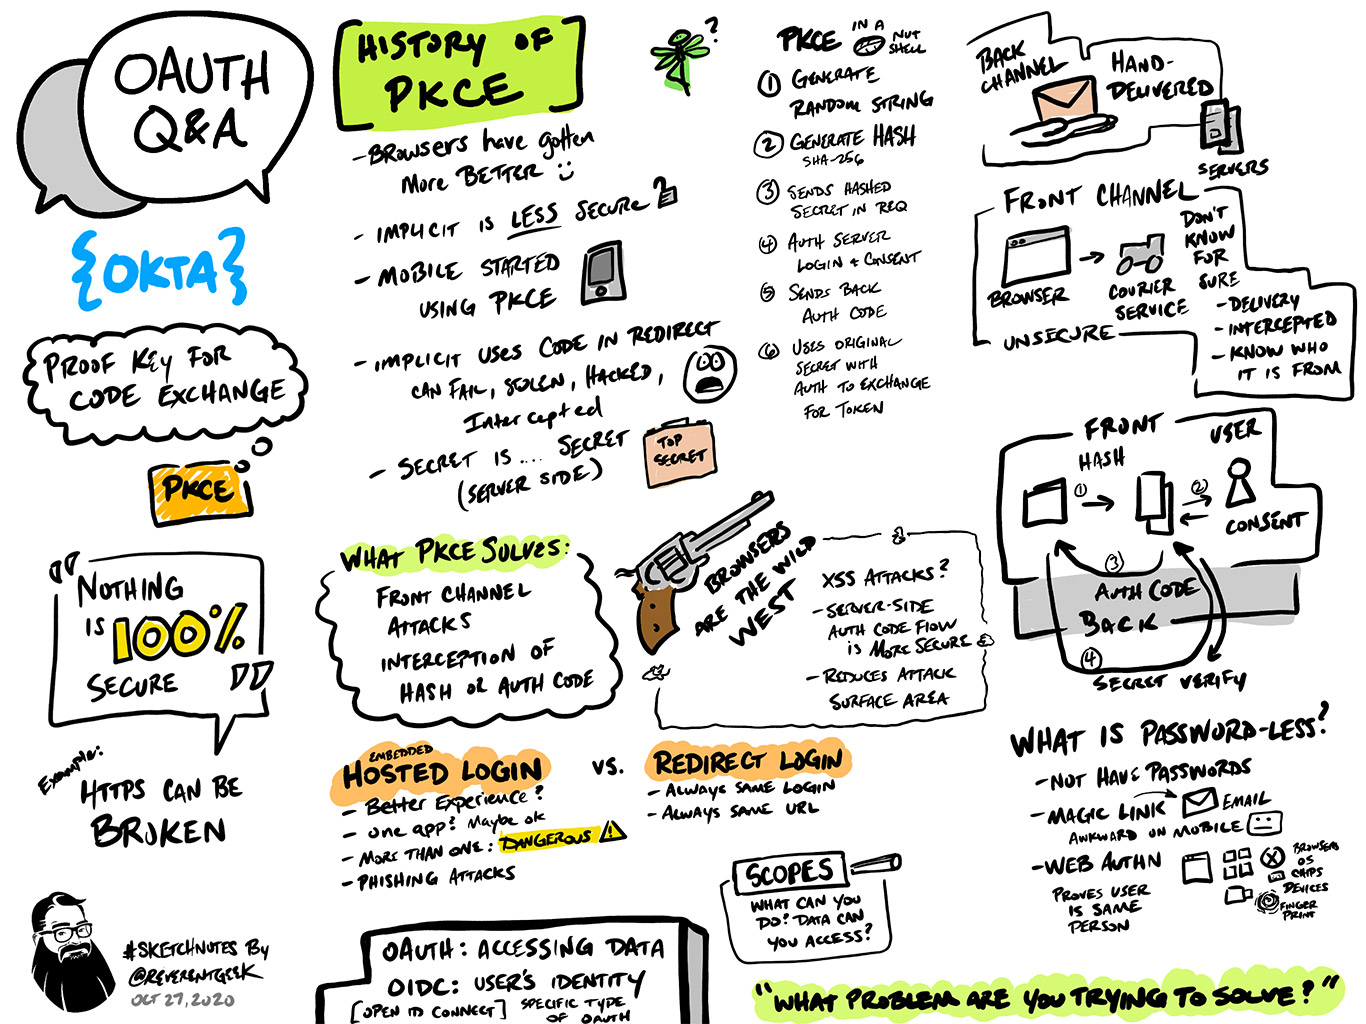 OAuth Q&A Sketch Notes